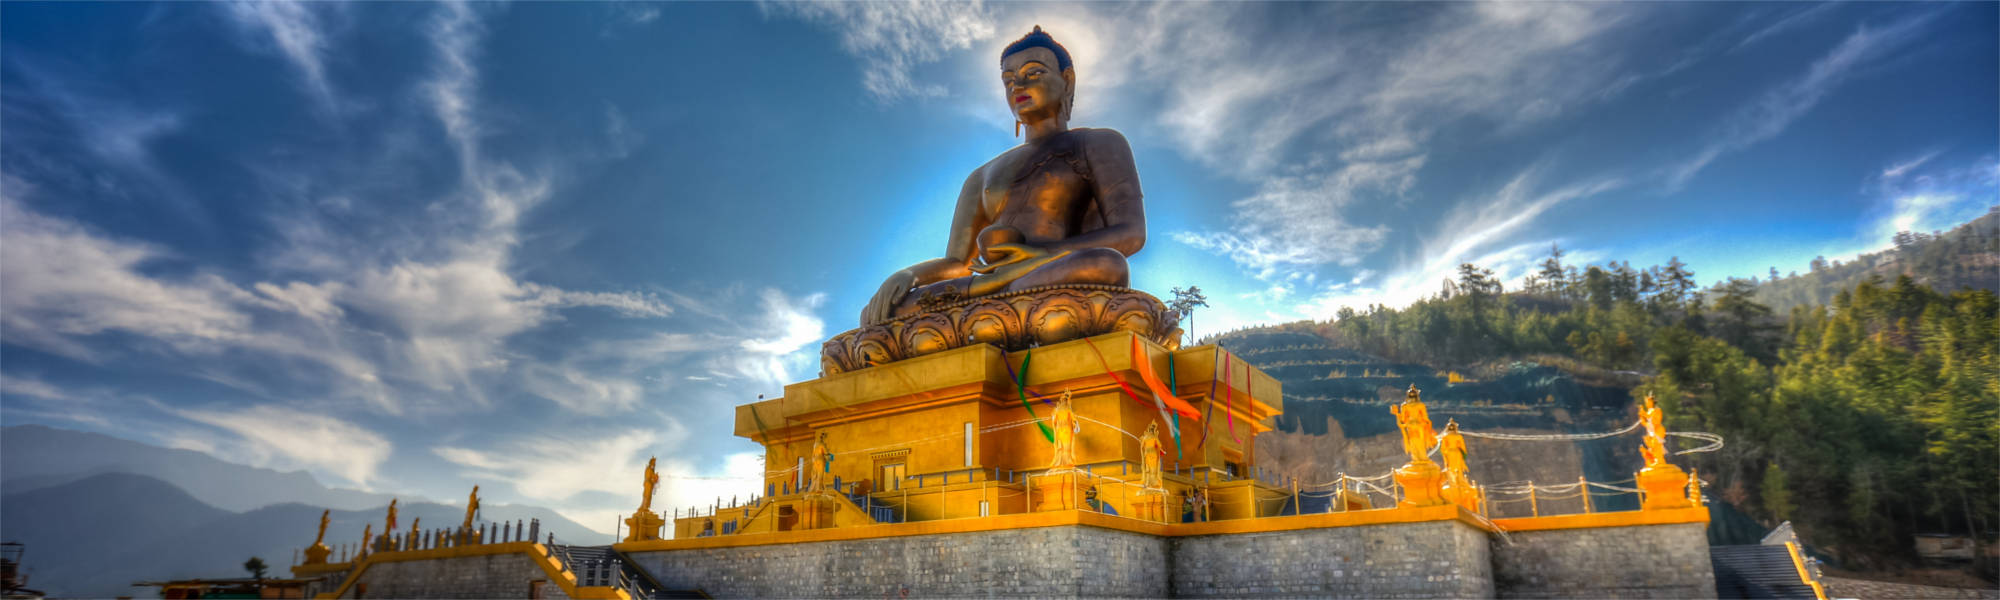 bhutan visitor guides